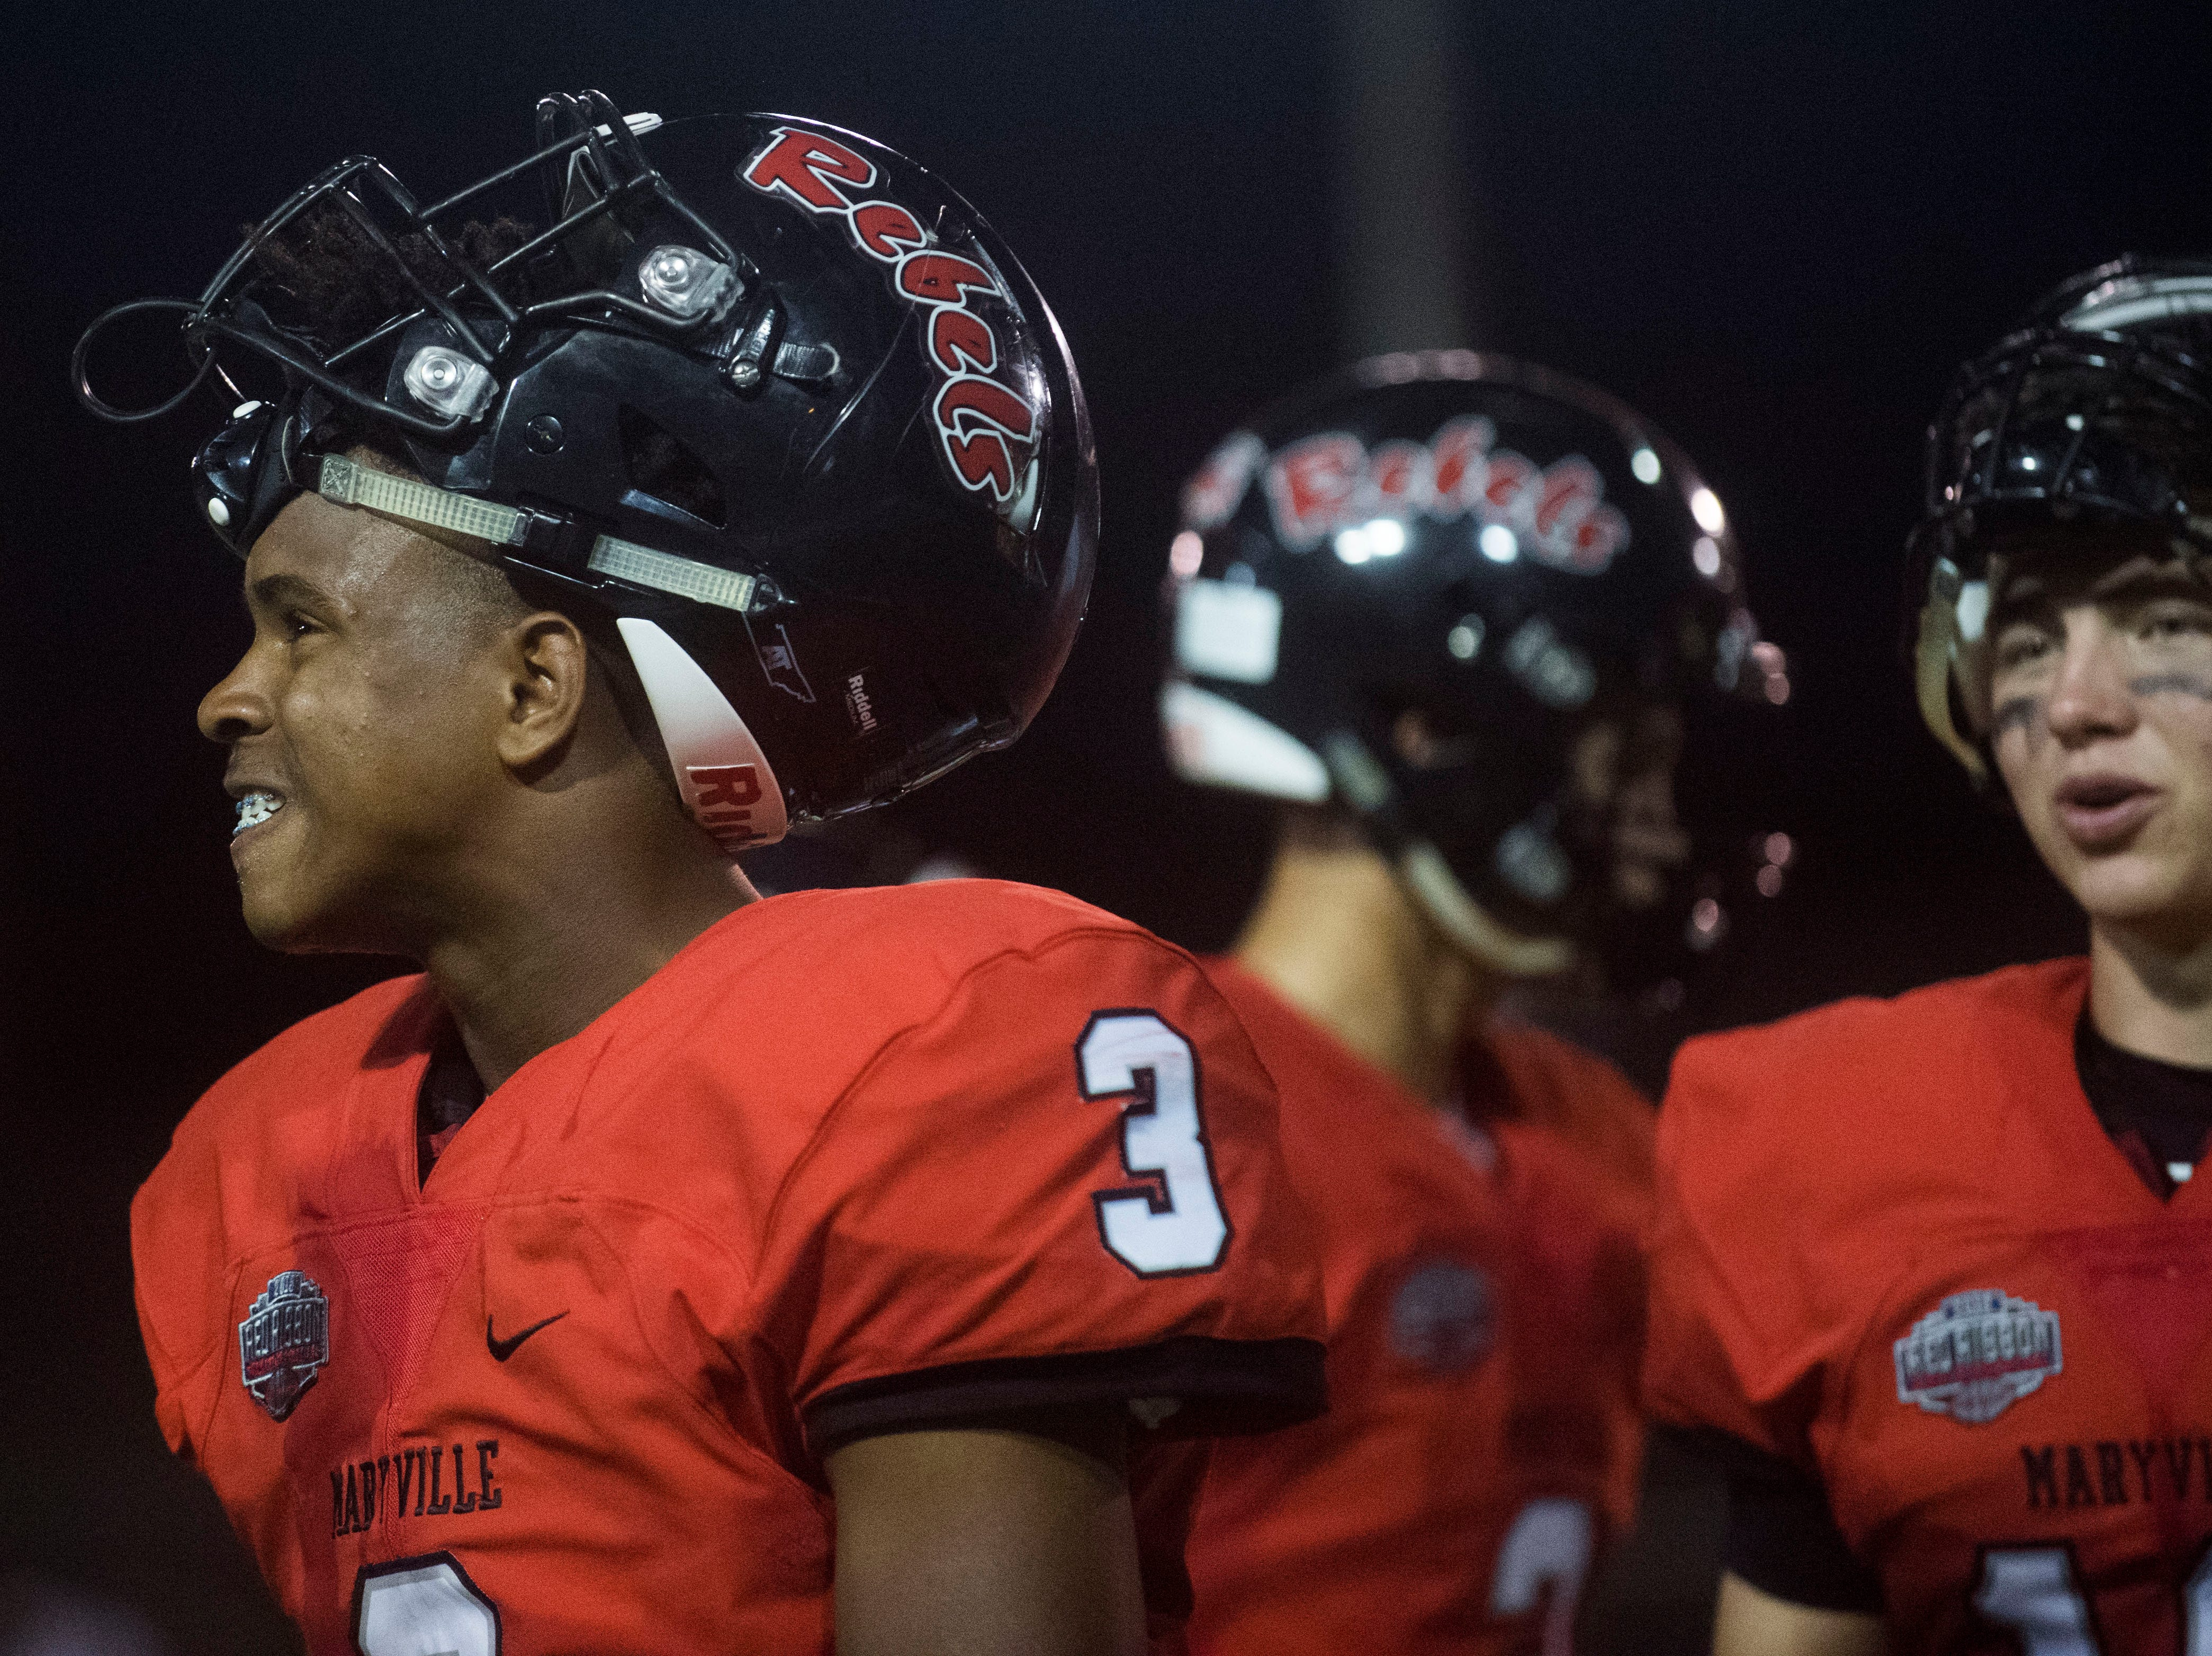 during a game between Cleveland and Maryville at Maryville Thursday, Oct. 4, 2018. Maryville defeated Cleveland 42-7.